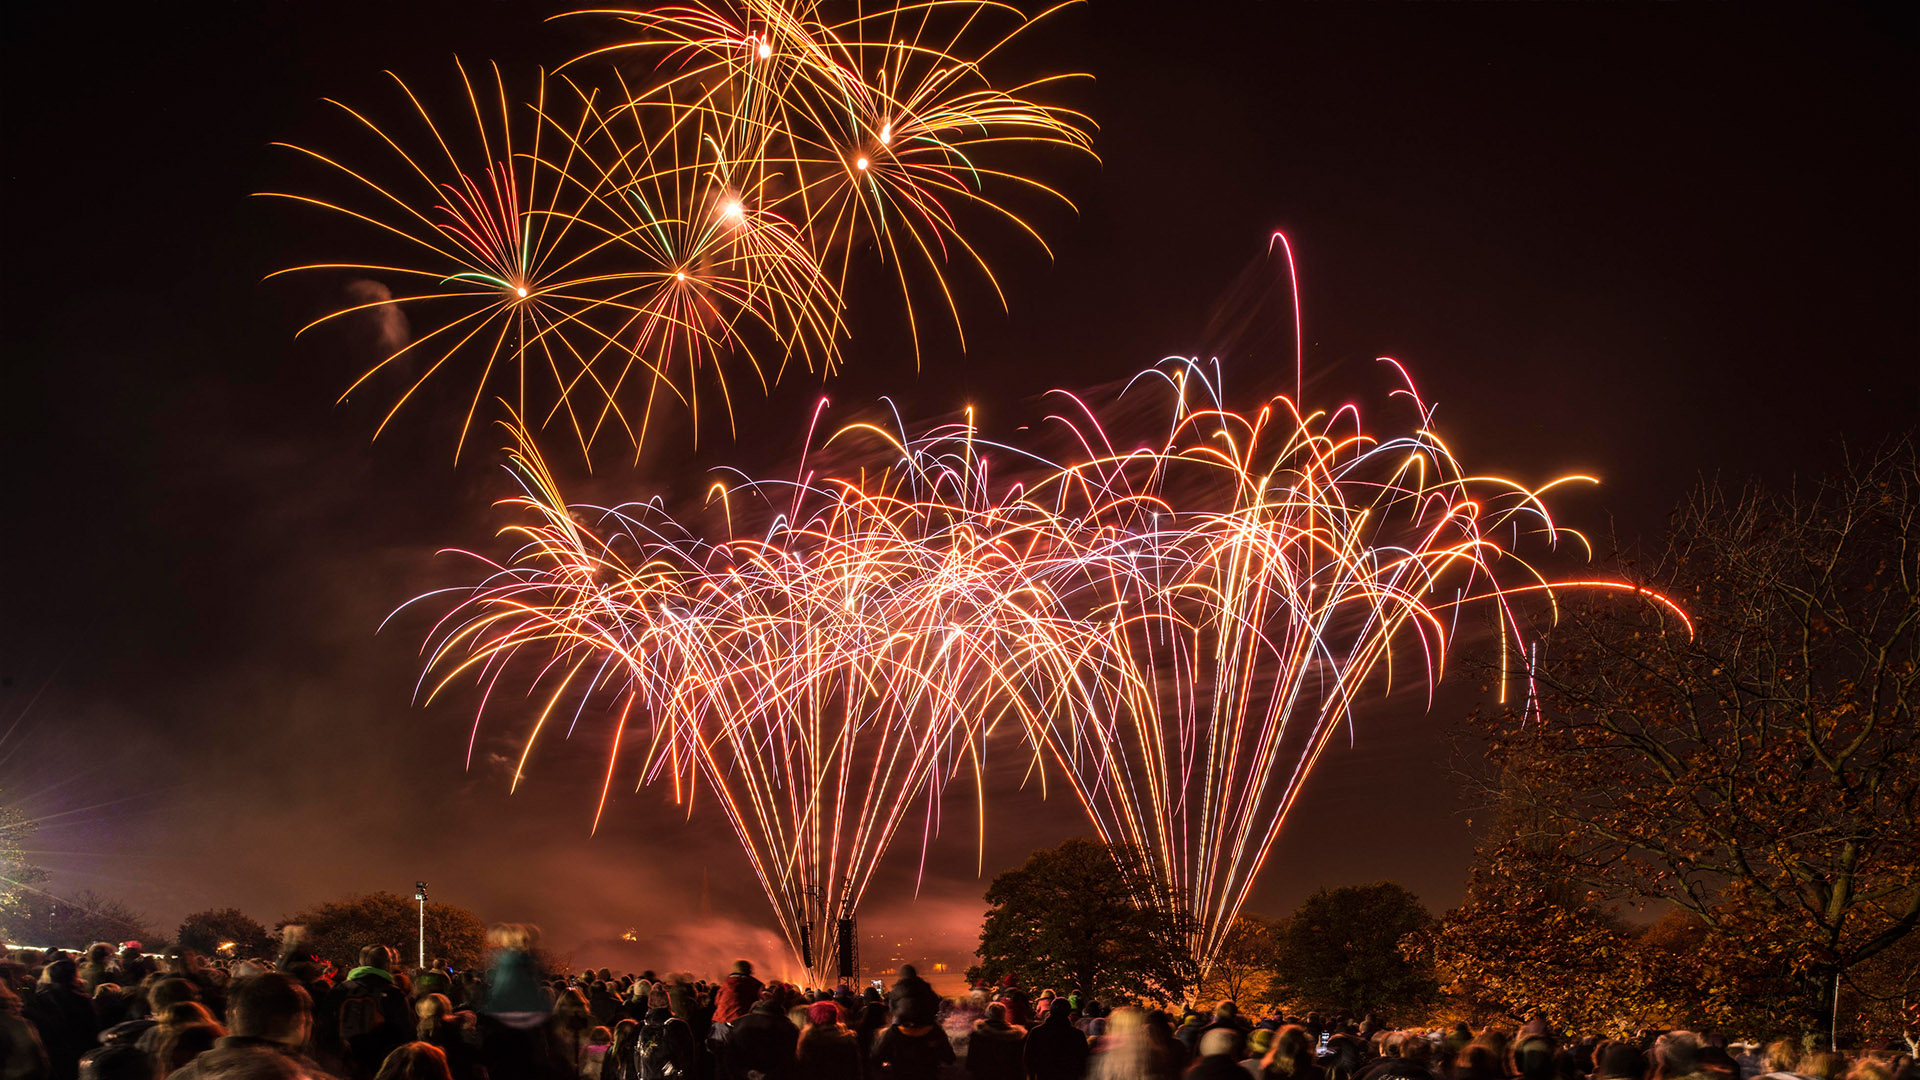 borckwell park, lambeth, bonfire night, fireworks, professional, private, corporate, pyrotechnics